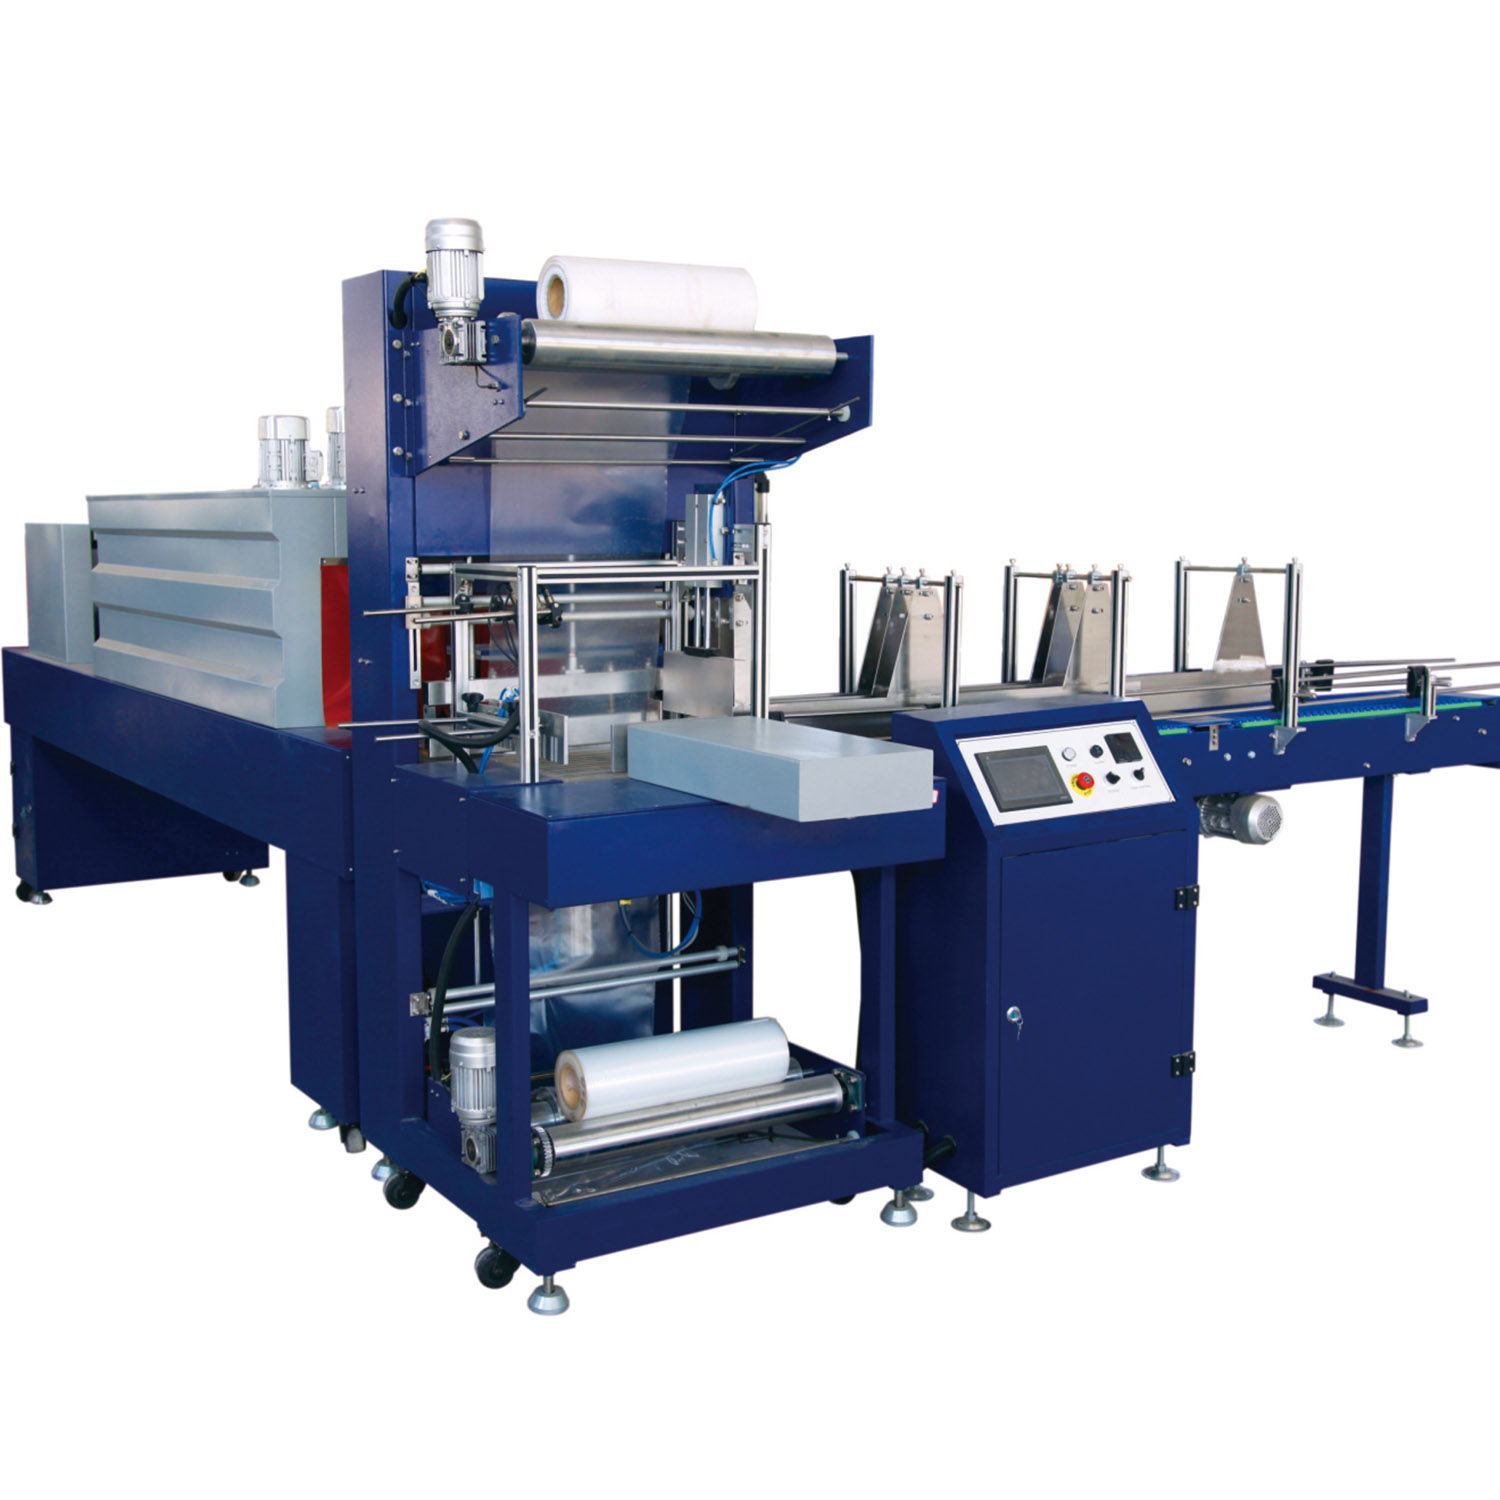 Factory direct semi-automatic multi-function PE film shrink wrapping packaging machines